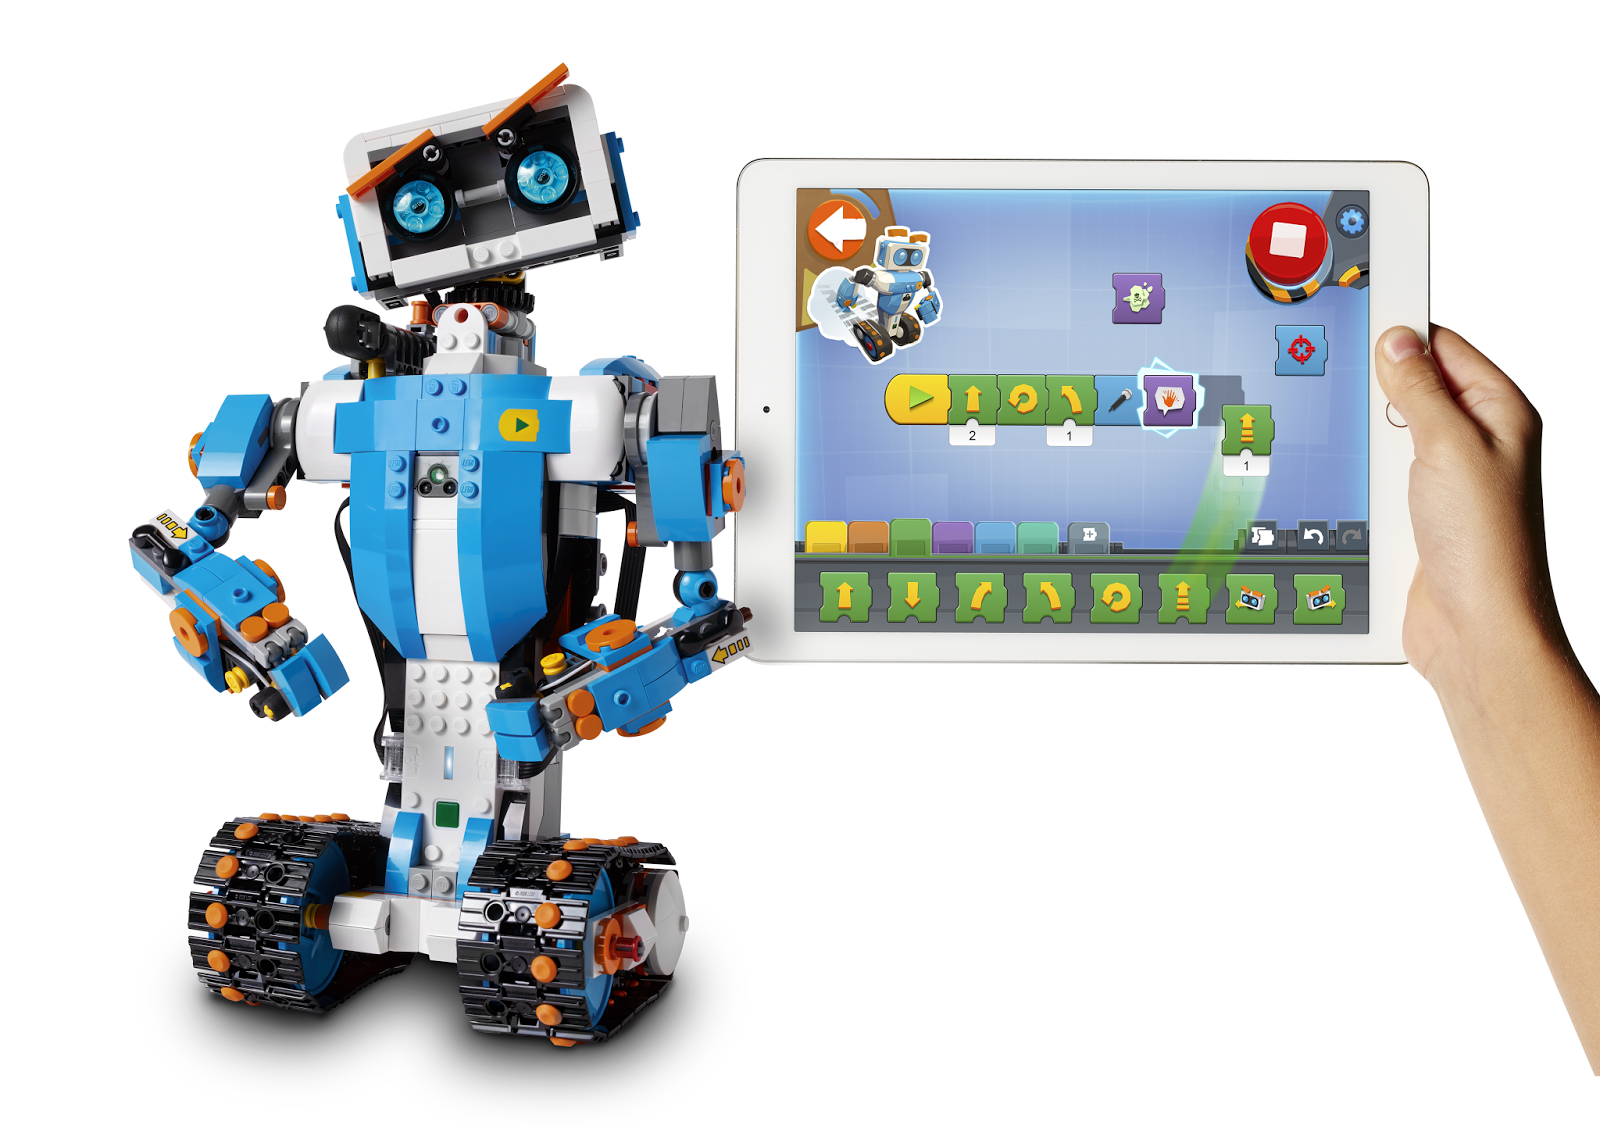 Toys For Kids 8 10 : Coding toys for kids what s new